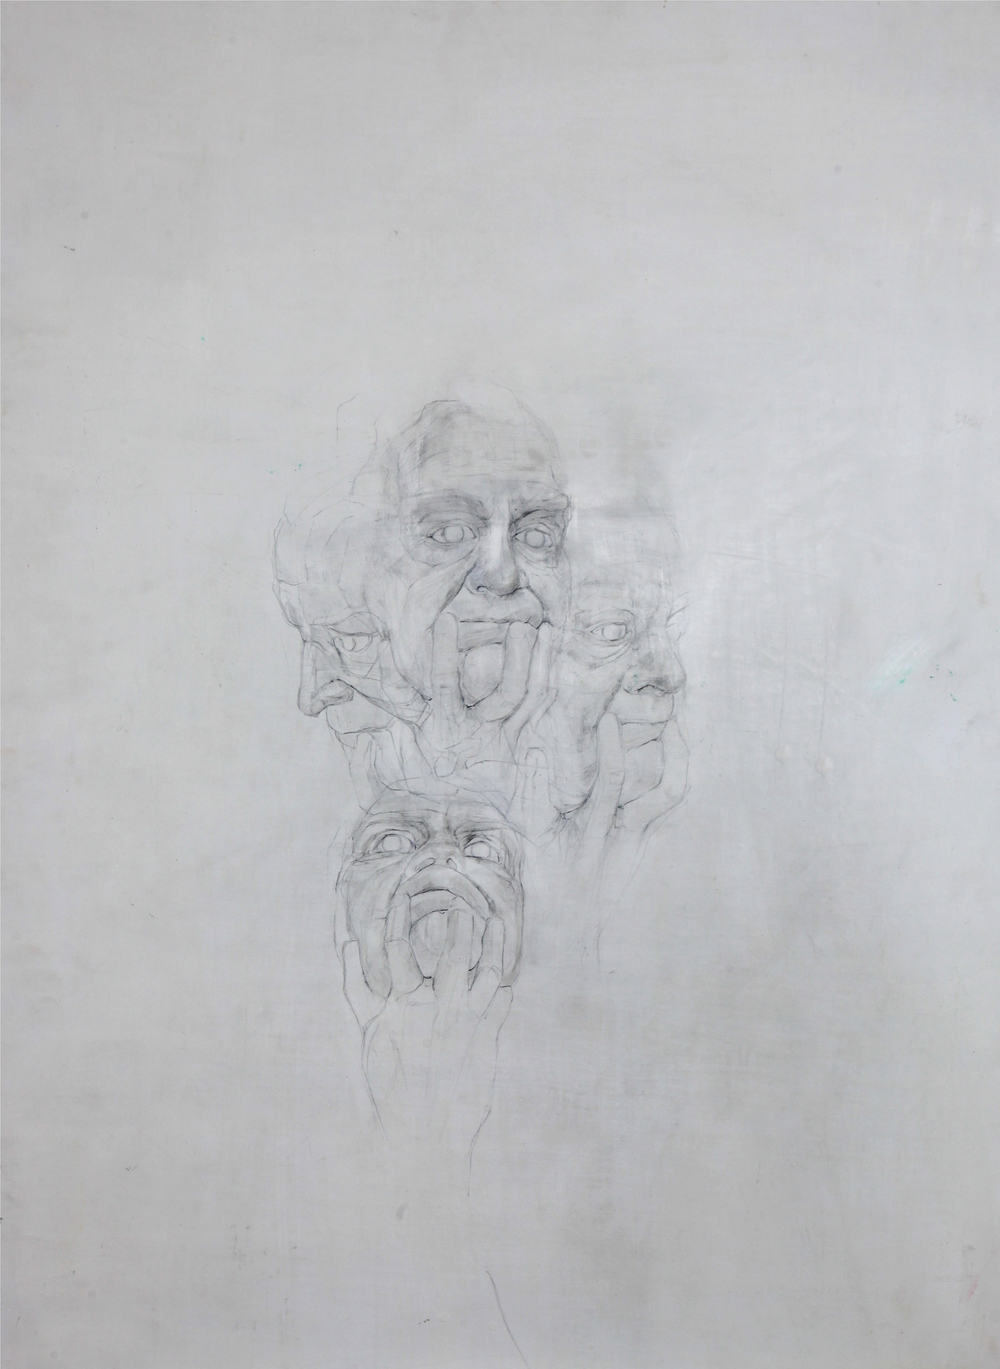 'Between finger and thumb'   Pencil on gesso board, 80 x 60 cm